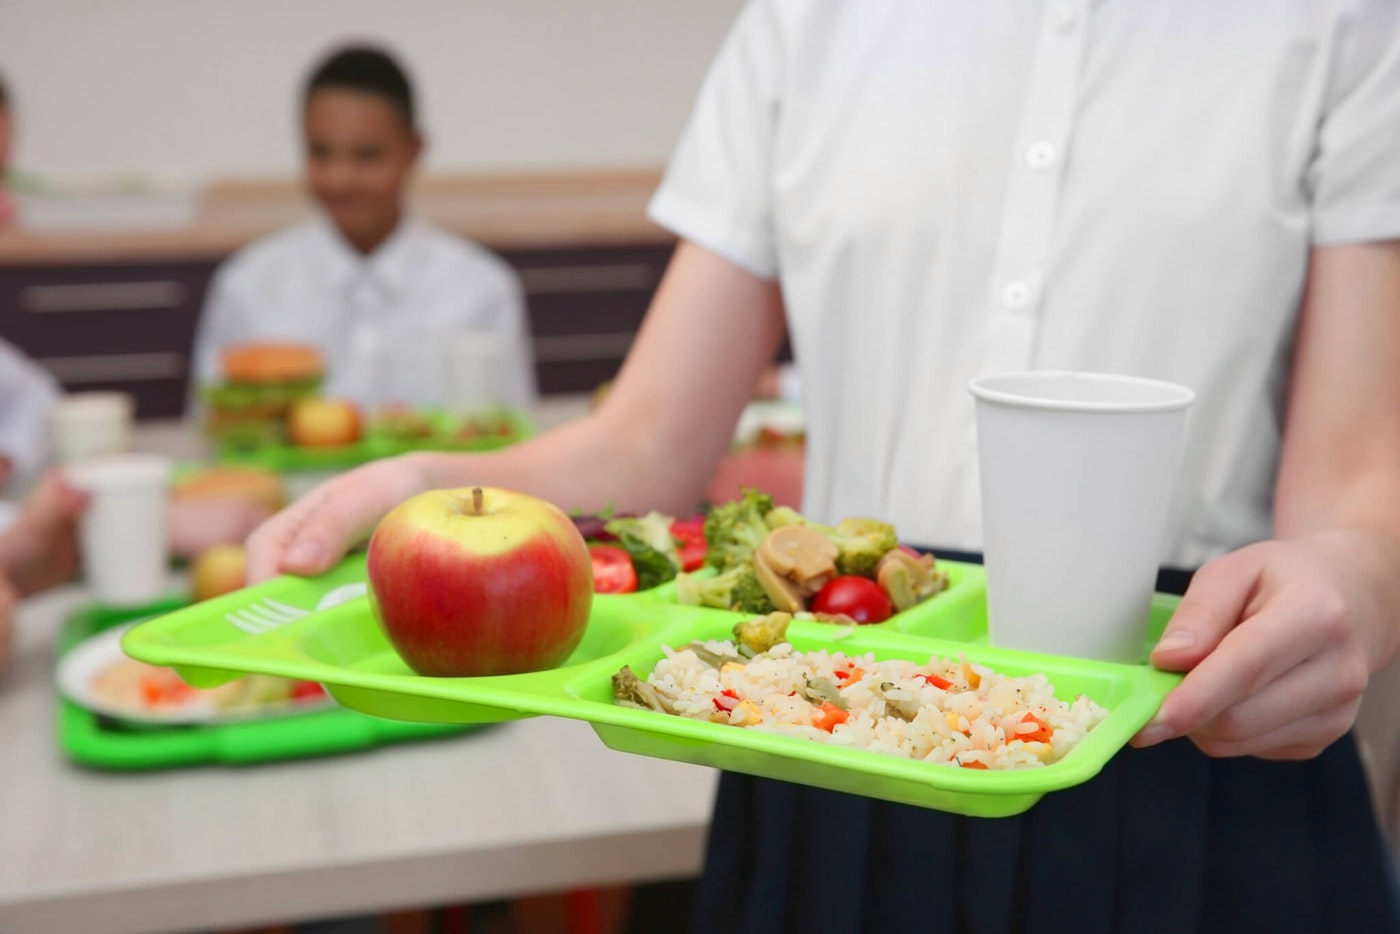 Millions of children may not have access to lunch as schools close during the coronavirus pandemic.